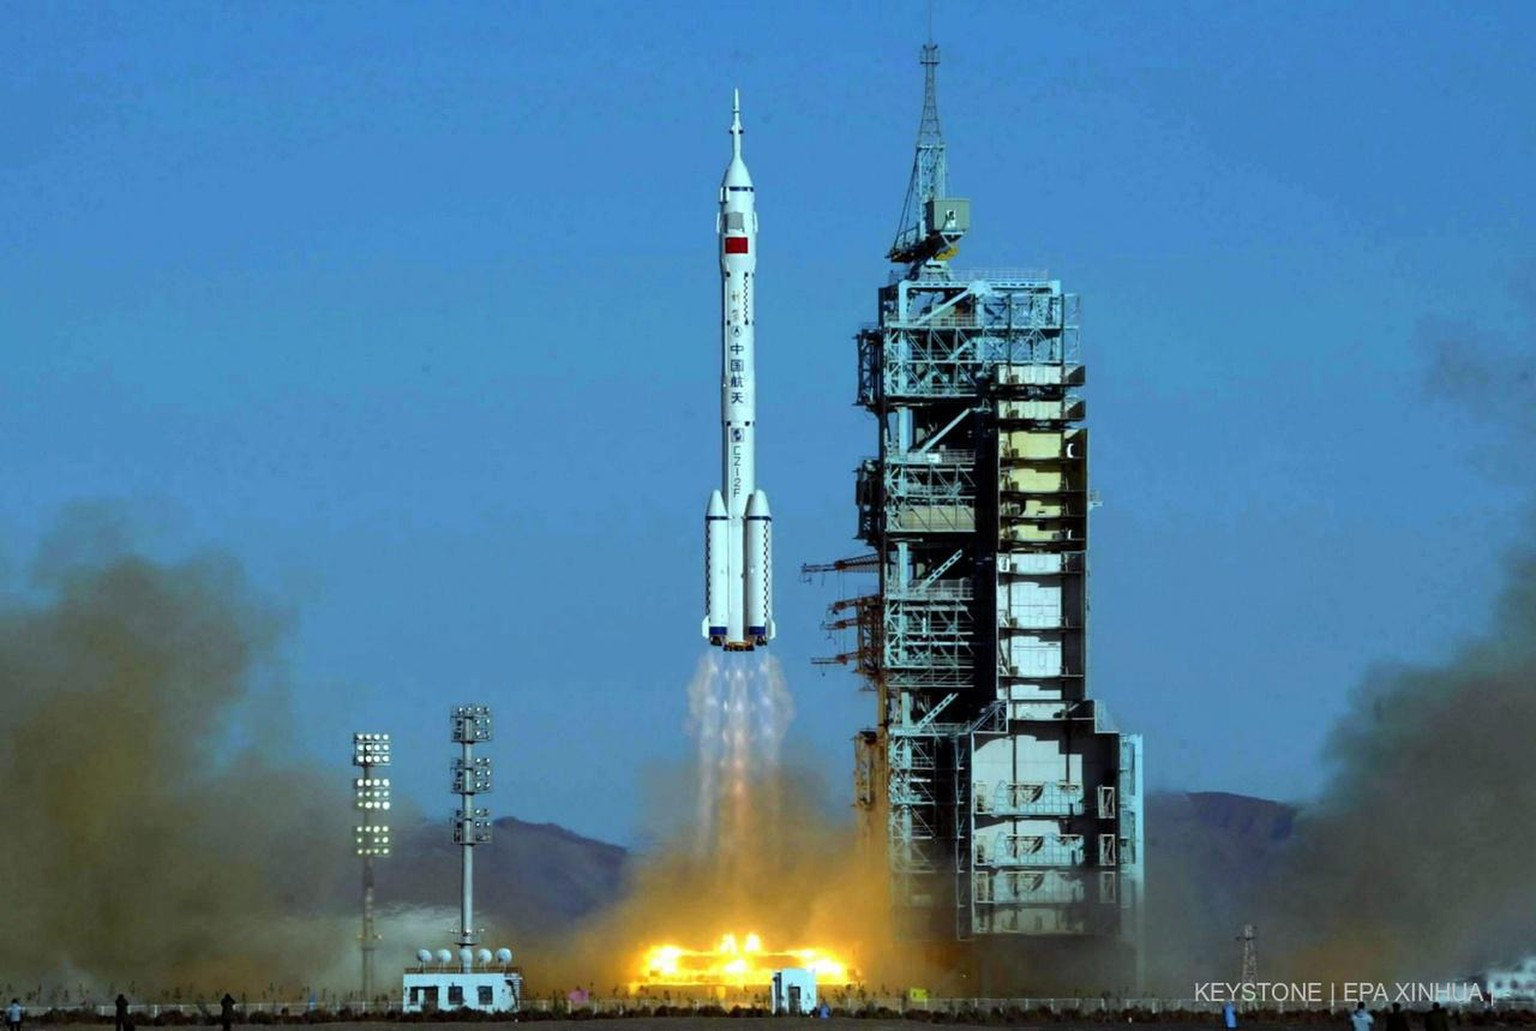 The Long March 2F rocket with Shenzhou V capsule carrying 38 year old Yang Liwei, the first Chinese to go into space, takes off from a desert launch pad in the Inner Mongolian autonomous region in western China 250km from the Jiuquan space centre Wednesday15 October 2003. EPA/-